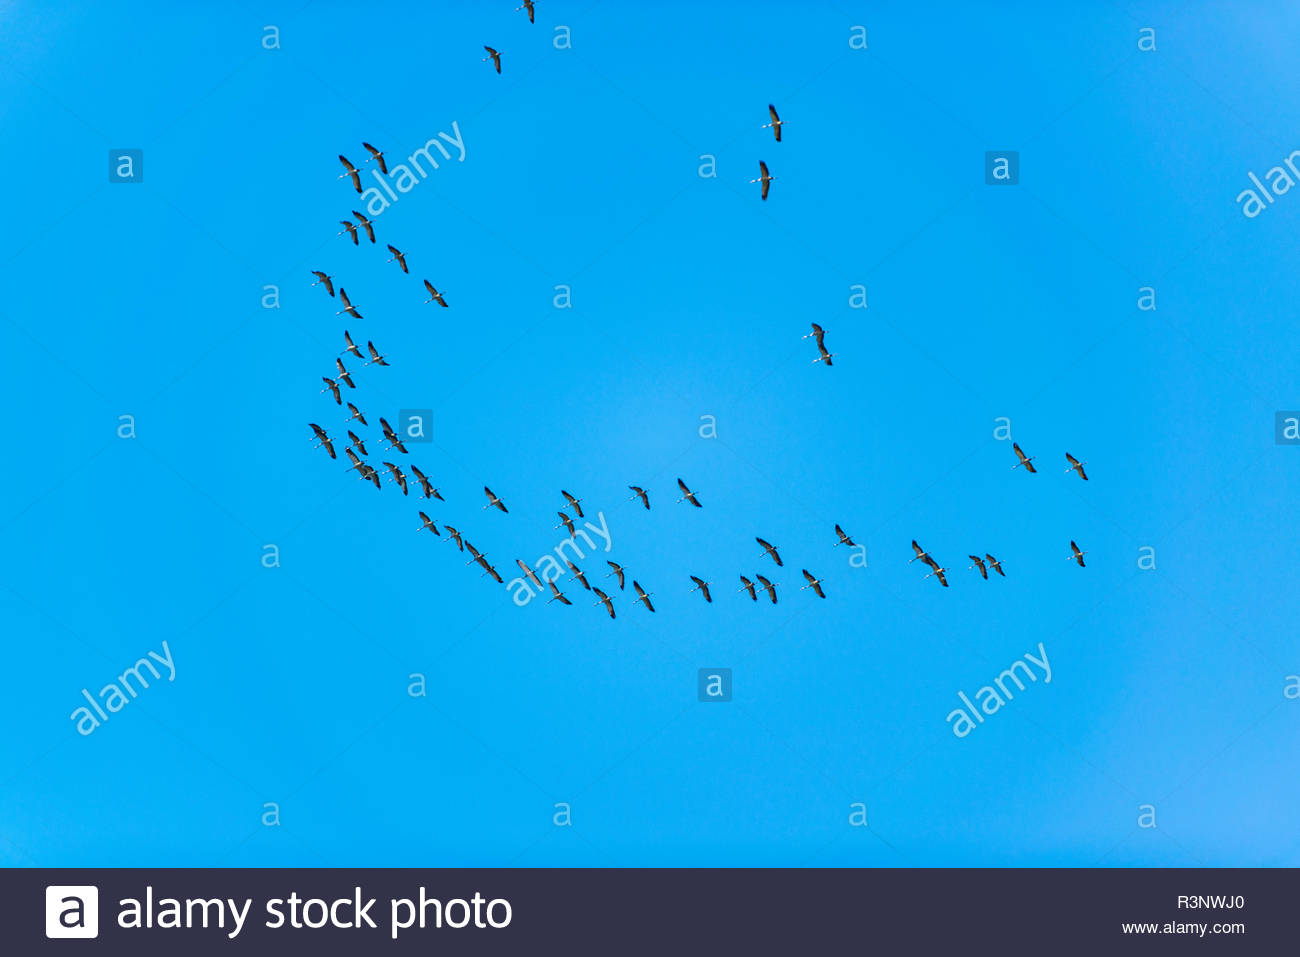 Zugvögel am blauen Himmel Stock Photo